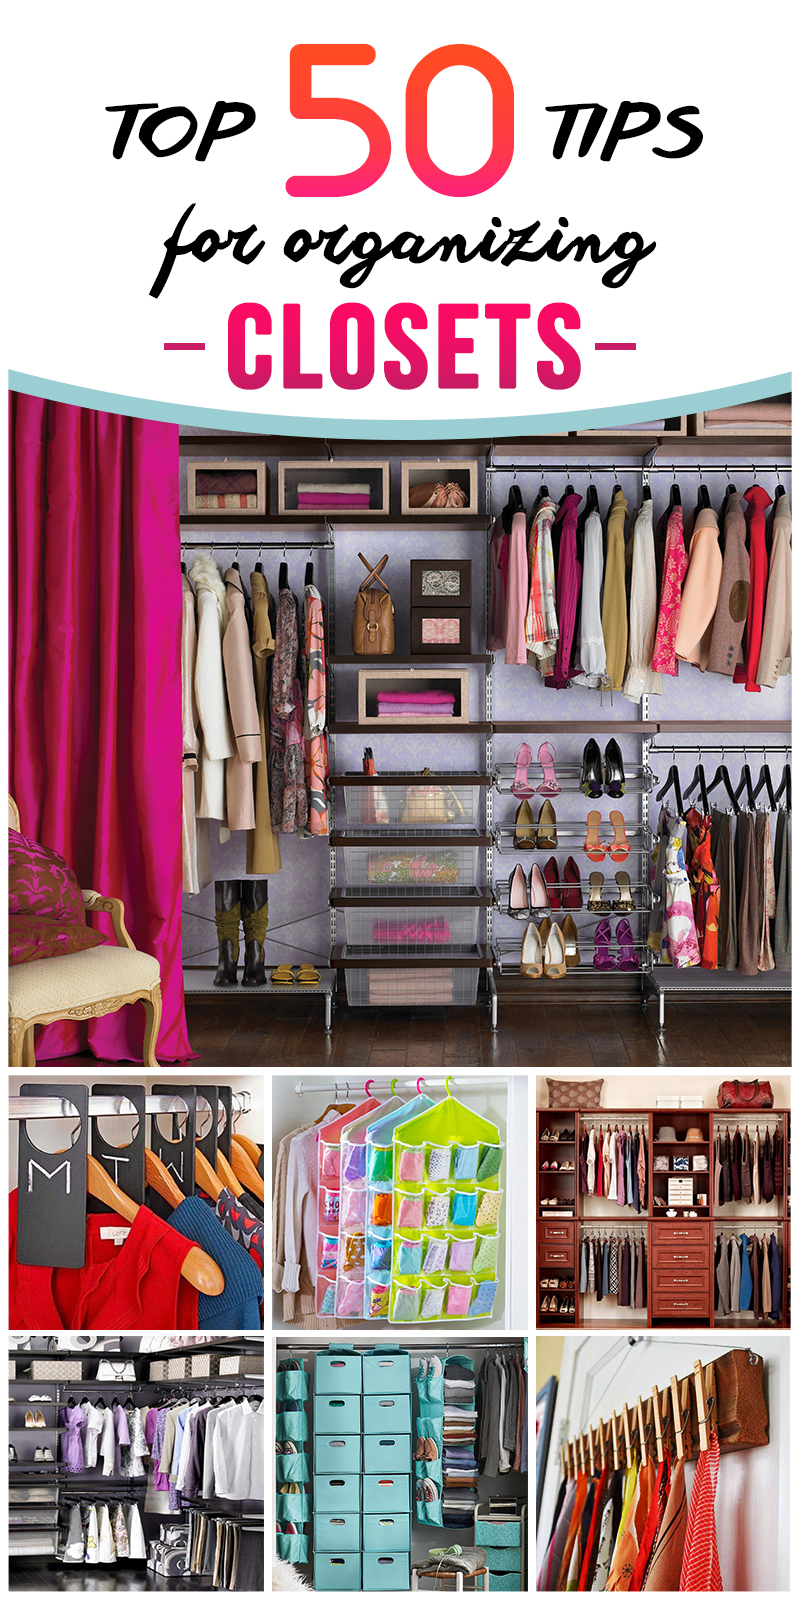 All of the systems are designed for a 6-foot-wide closet and offer a clothes rod, shelving, bins or drawers, and usually an extra component such as a belt hanger or shoe organizer.